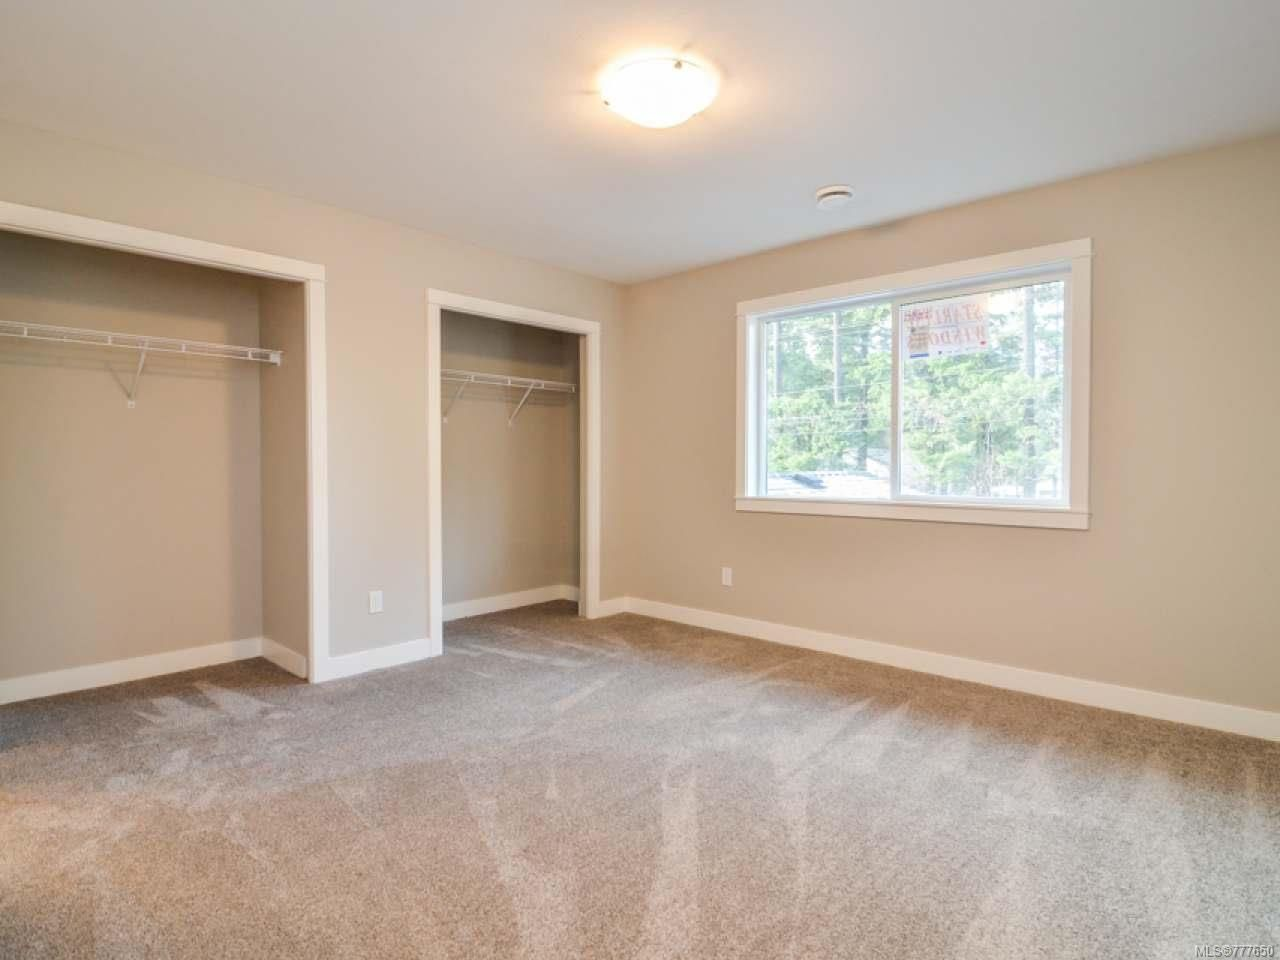 Photo 8: Photos: 2 535 Petersen Rd in CAMPBELL RIVER: CR Campbell River West Half Duplex for sale (Campbell River)  : MLS®# 777650